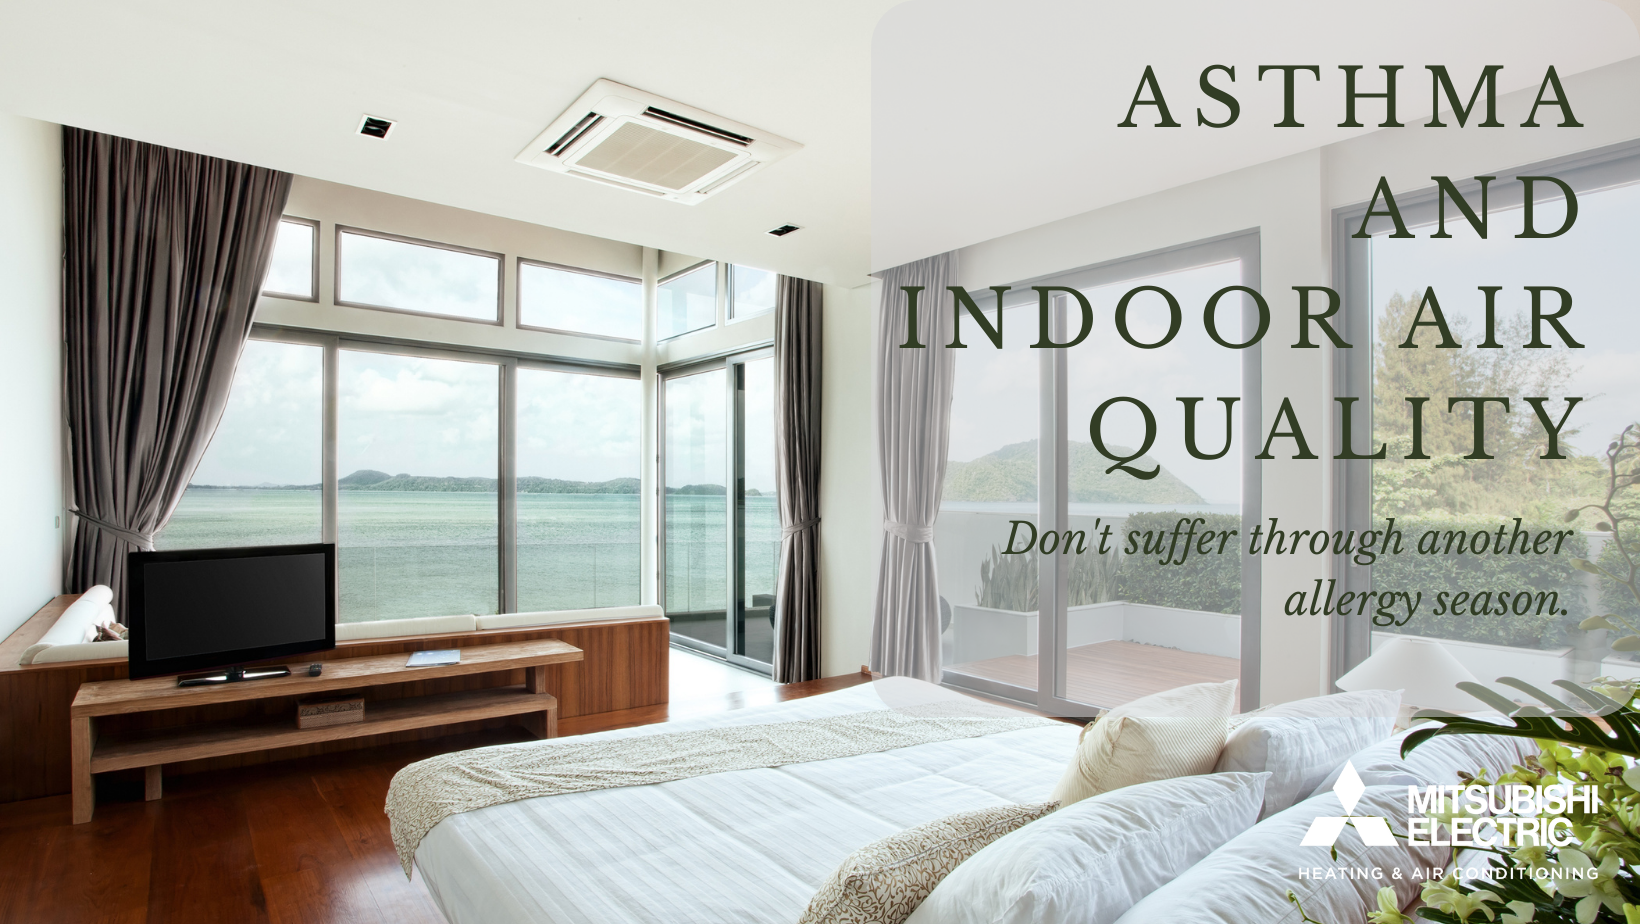 Asthma and Indoor Air Quality